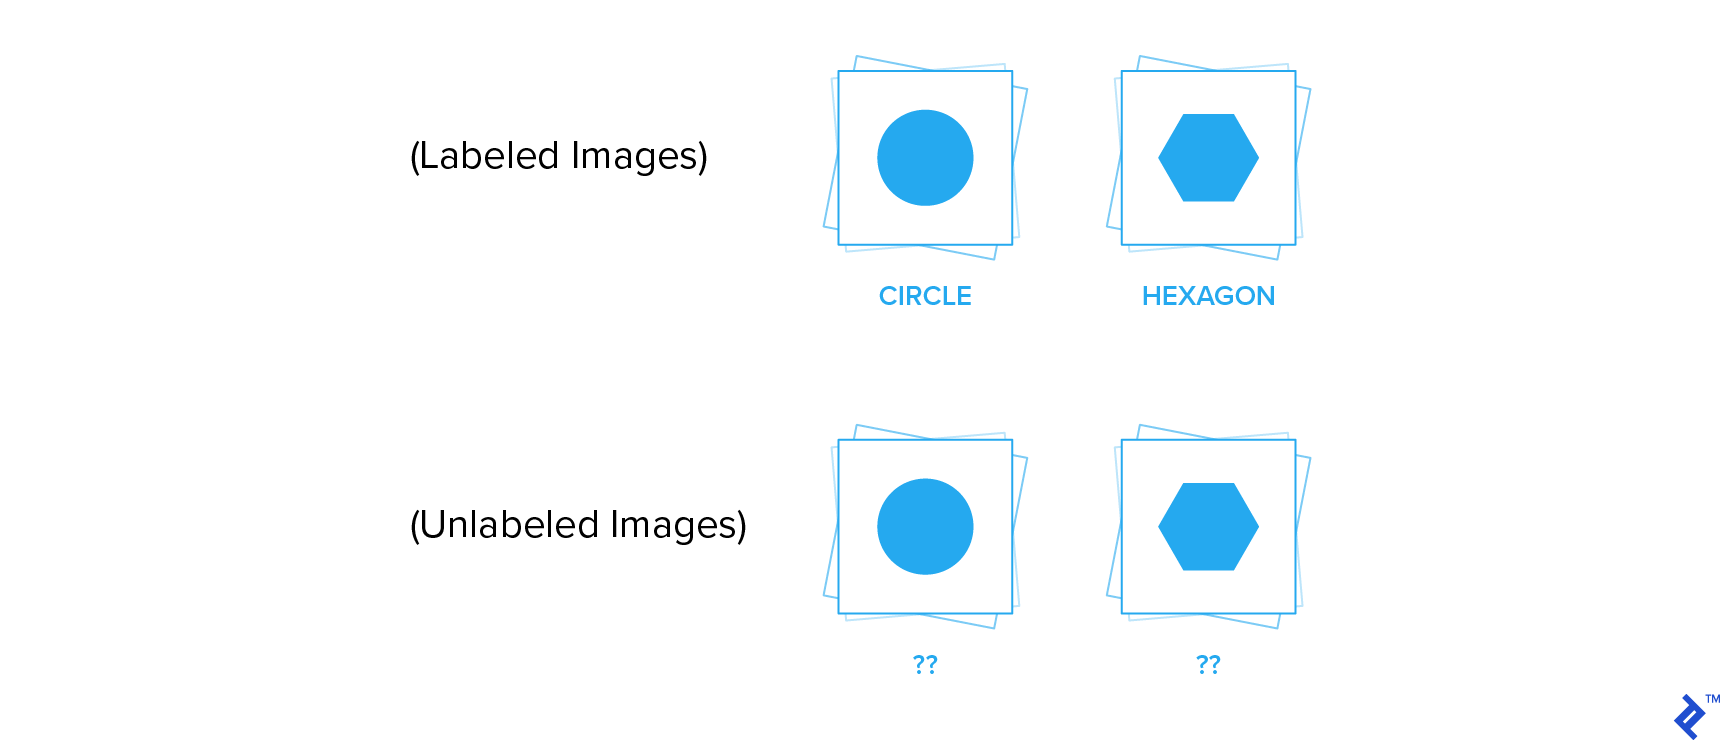 Labeled and unlabeled images